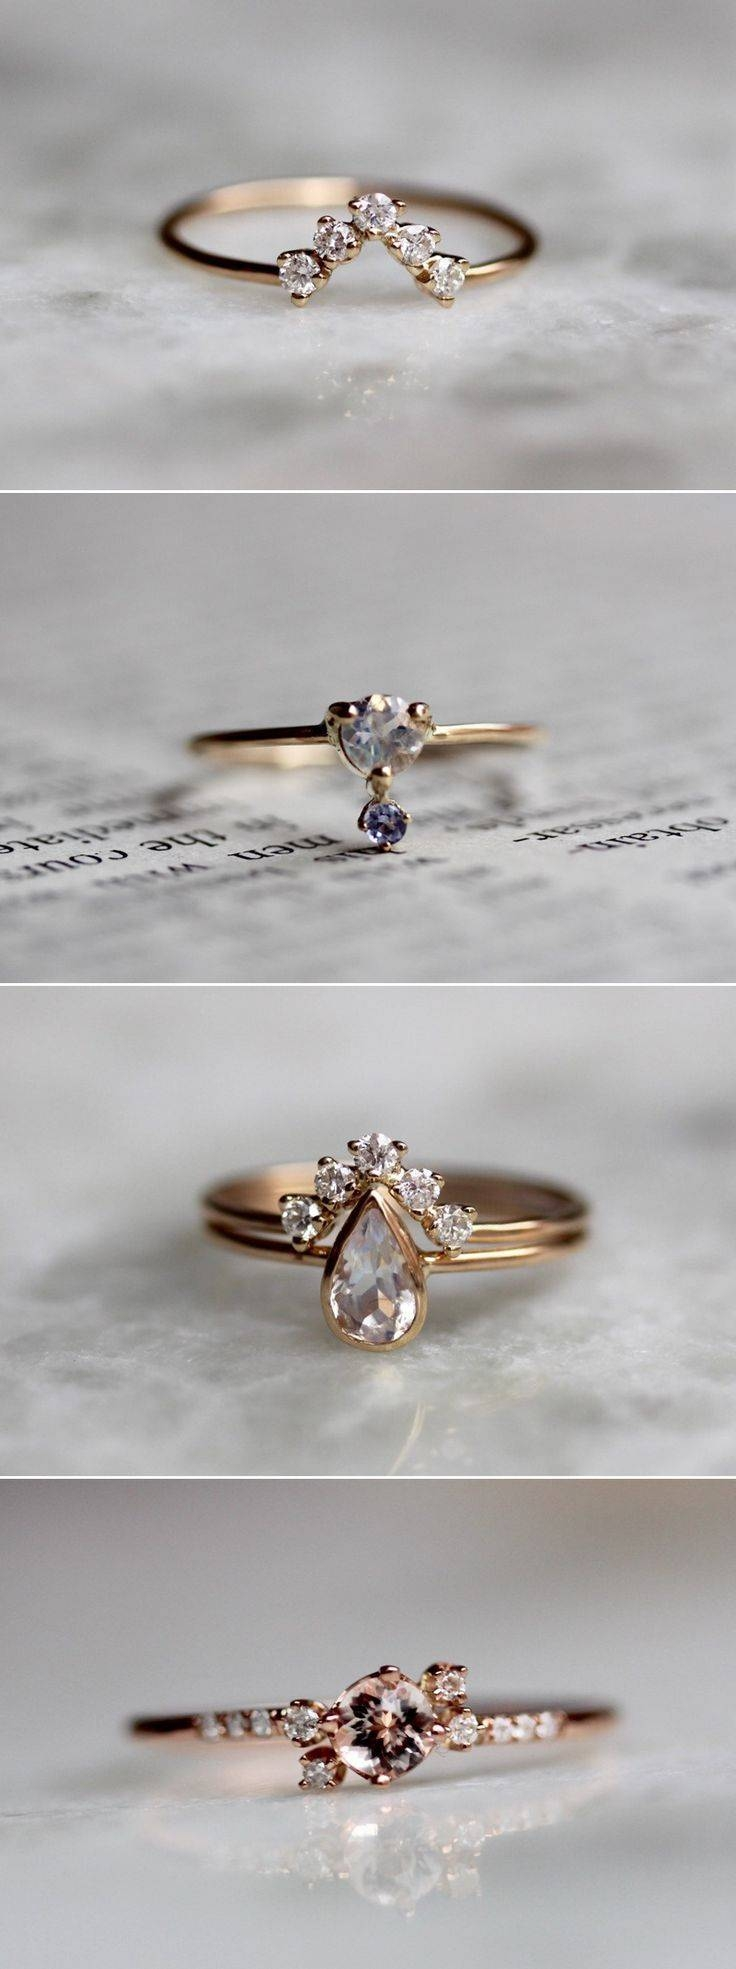 Best 25+ Alternative Wedding Rings Ideas Only On Pinterest Pertaining To Artsy Wedding Rings (View 8 of 15)